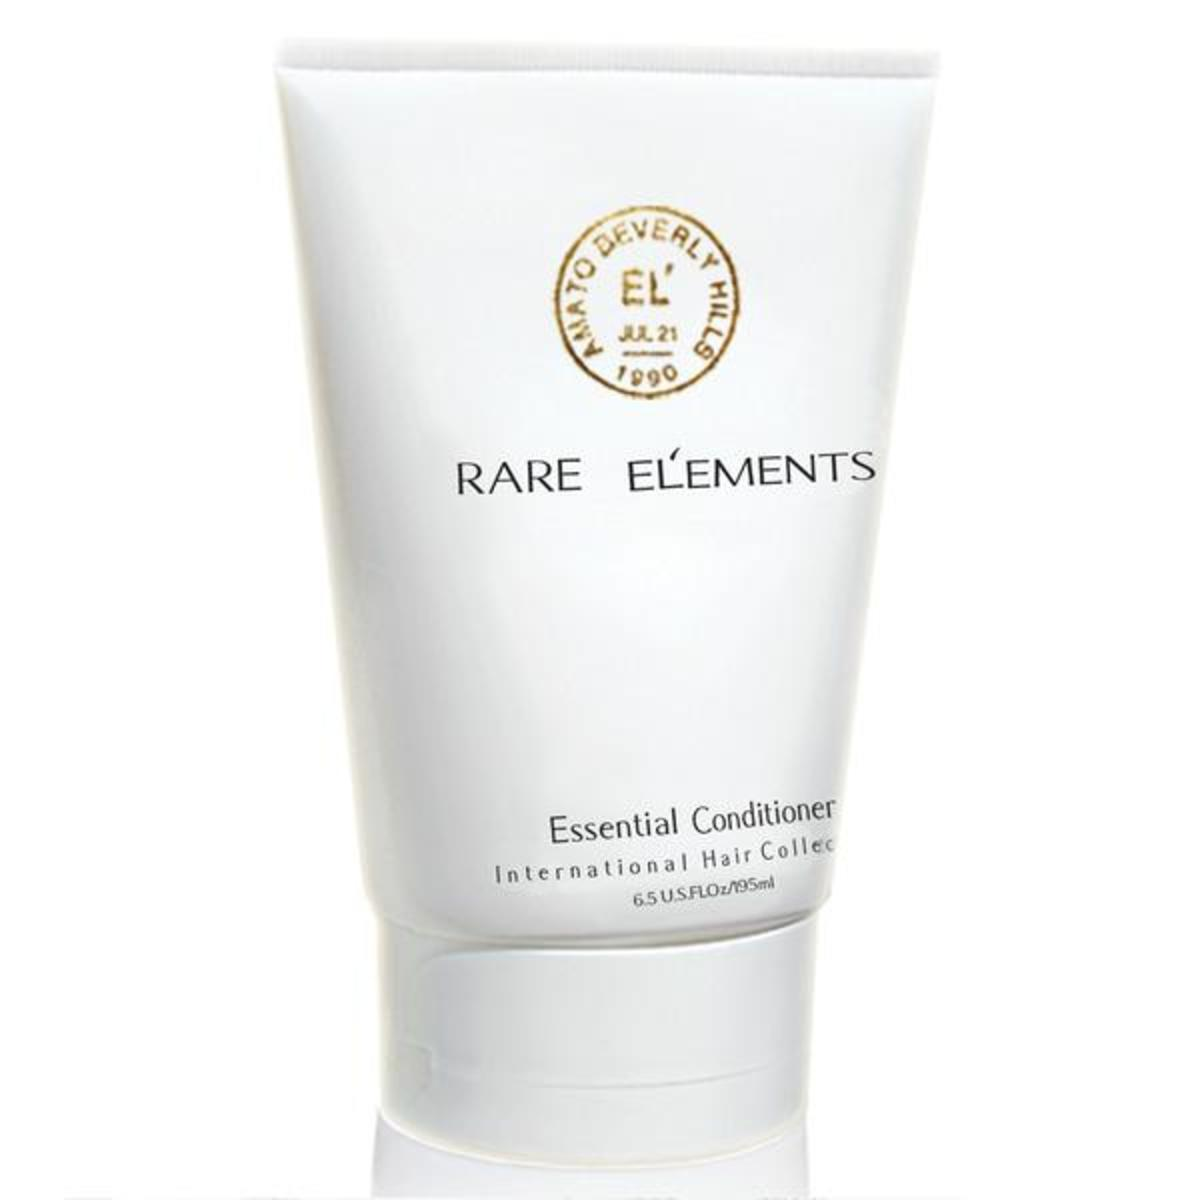 Rare El'ements Essential Conditioner